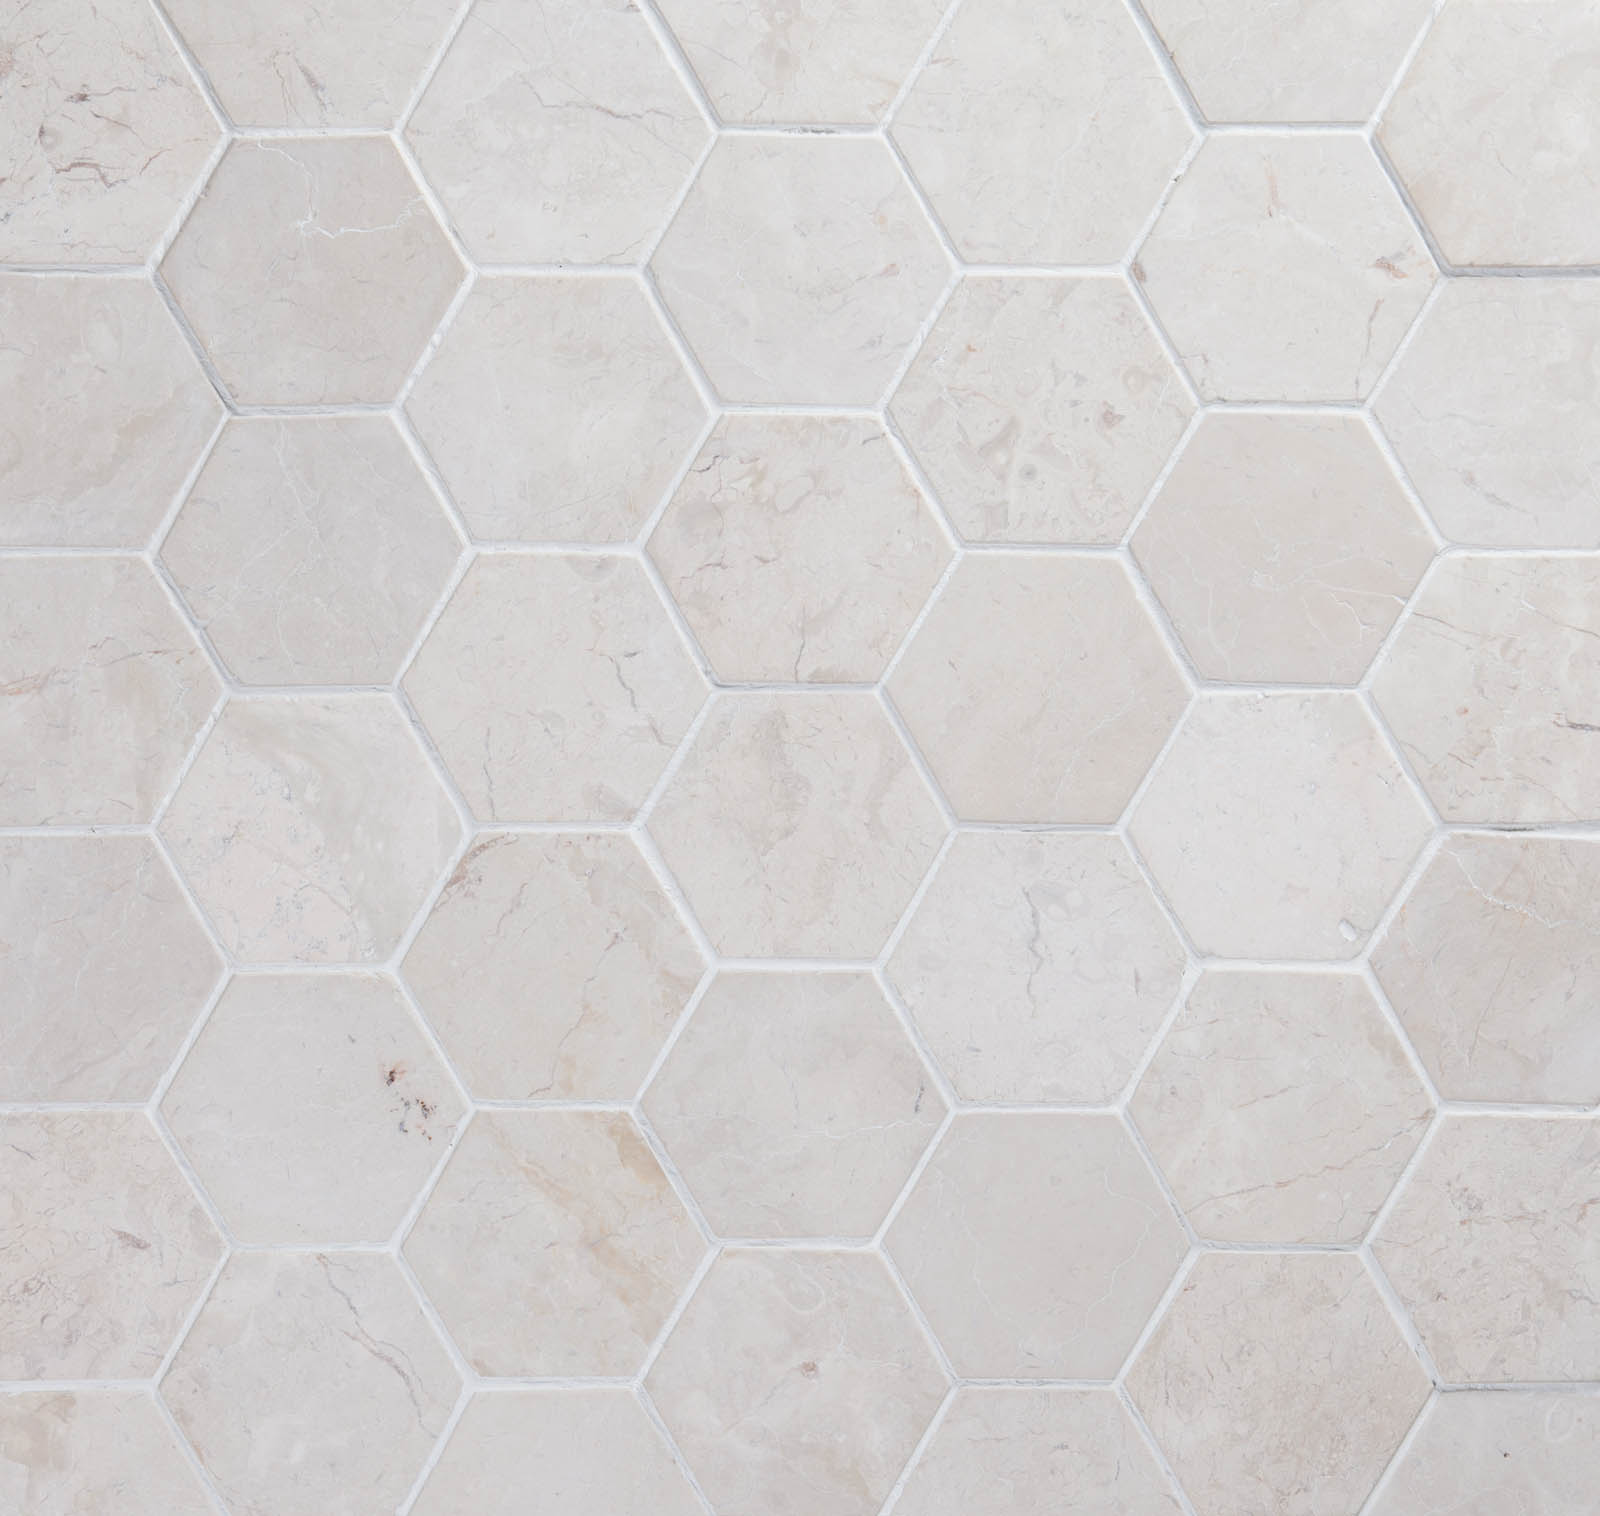 Marmorilaatta Qualitystone Hexagon White 100 x 100 mm